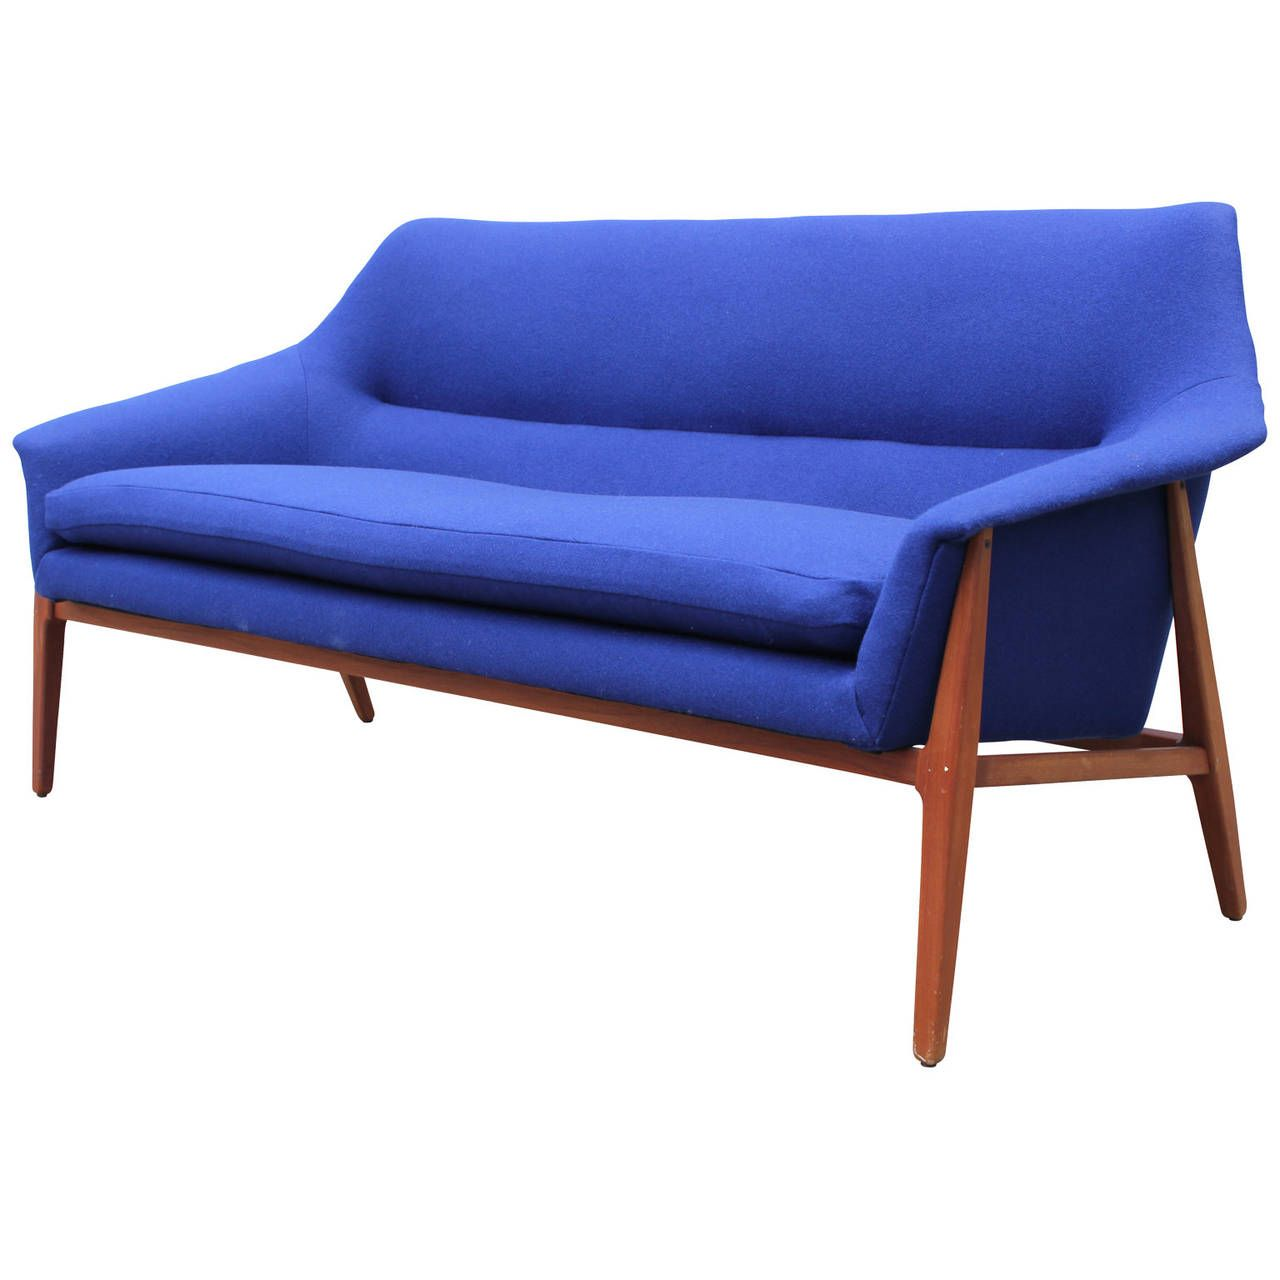 Sofa For Sale Houston Pin By Reeves Antiques On Danish And Scandinavian Design In 2019